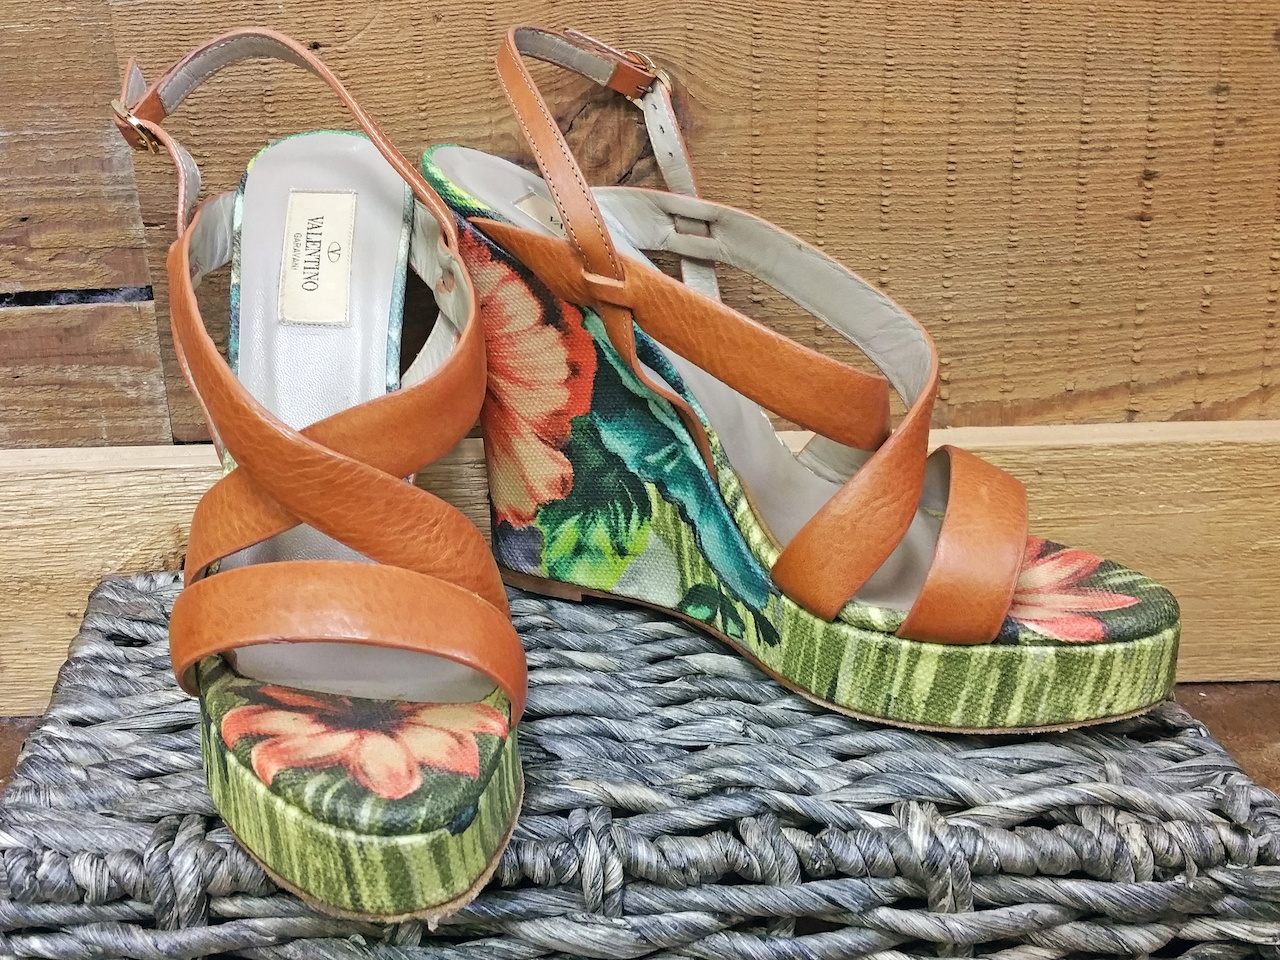 Valentino floral wedges, $125, at Second Hand Rose